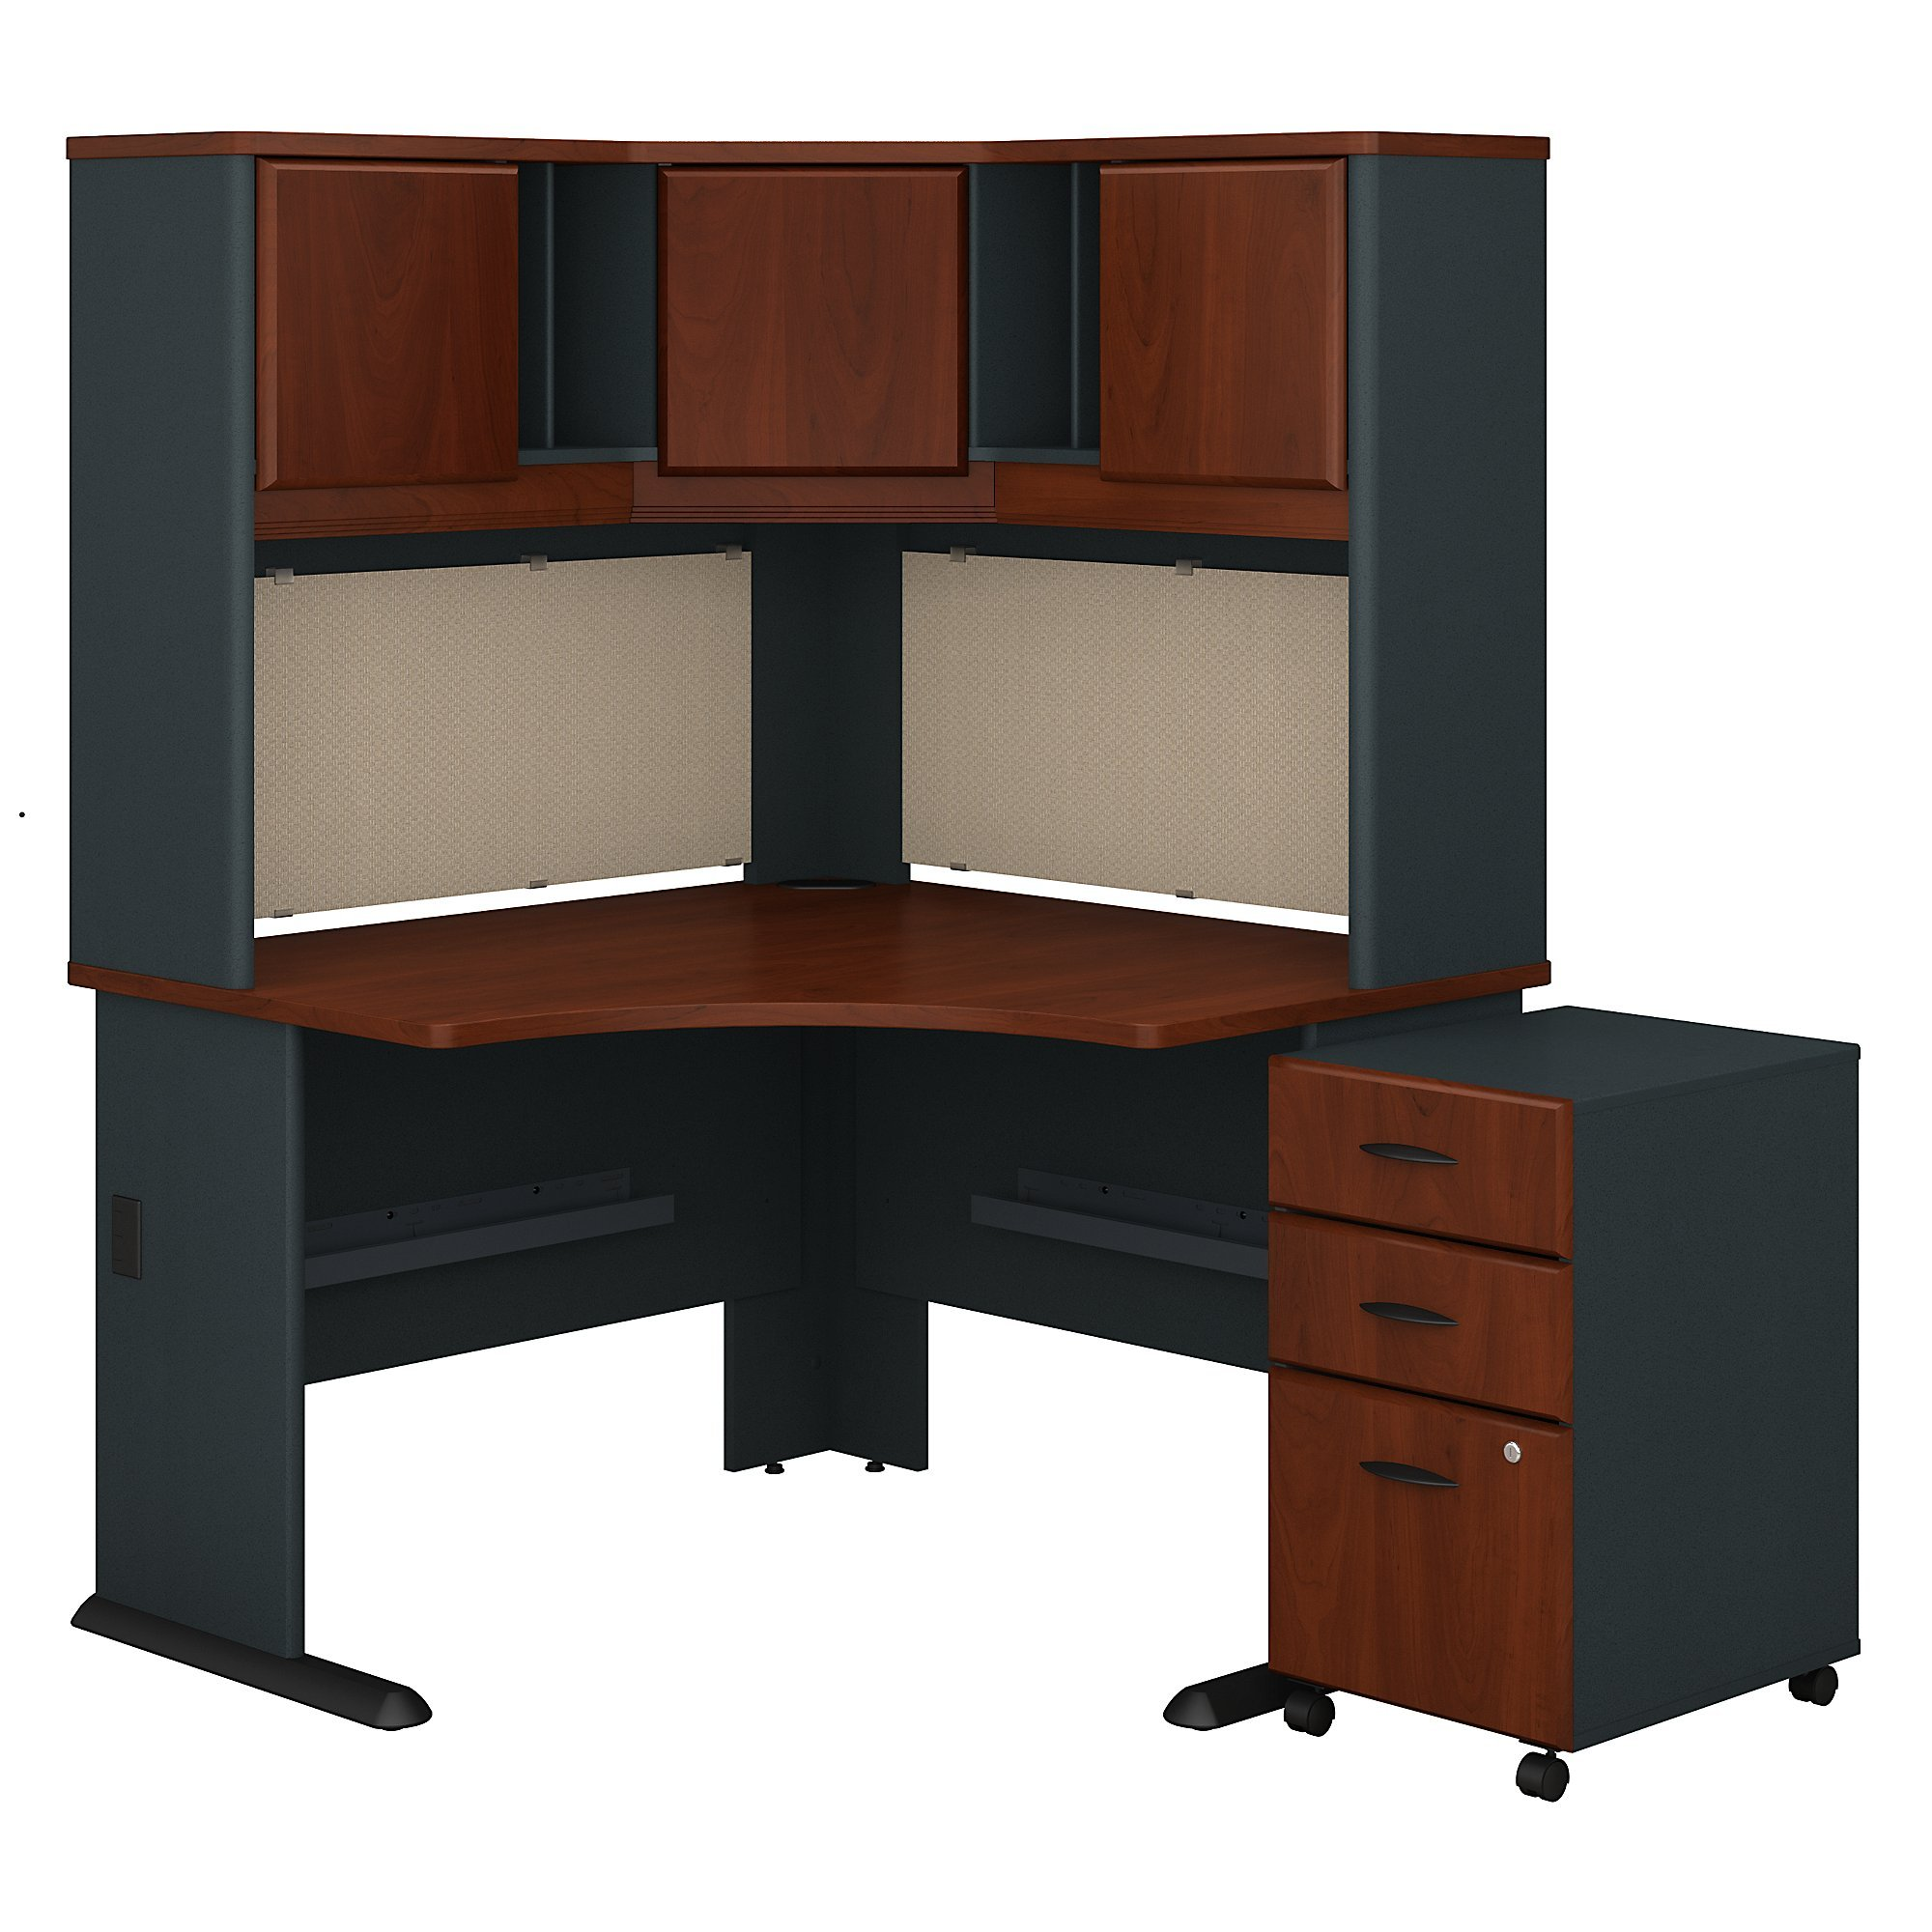 Bush Business Furniture Series A 48W Corner Desk with Hutch and Mobile File Cabinet in Hansen Cherry and Galaxy by Bush Business Furniture